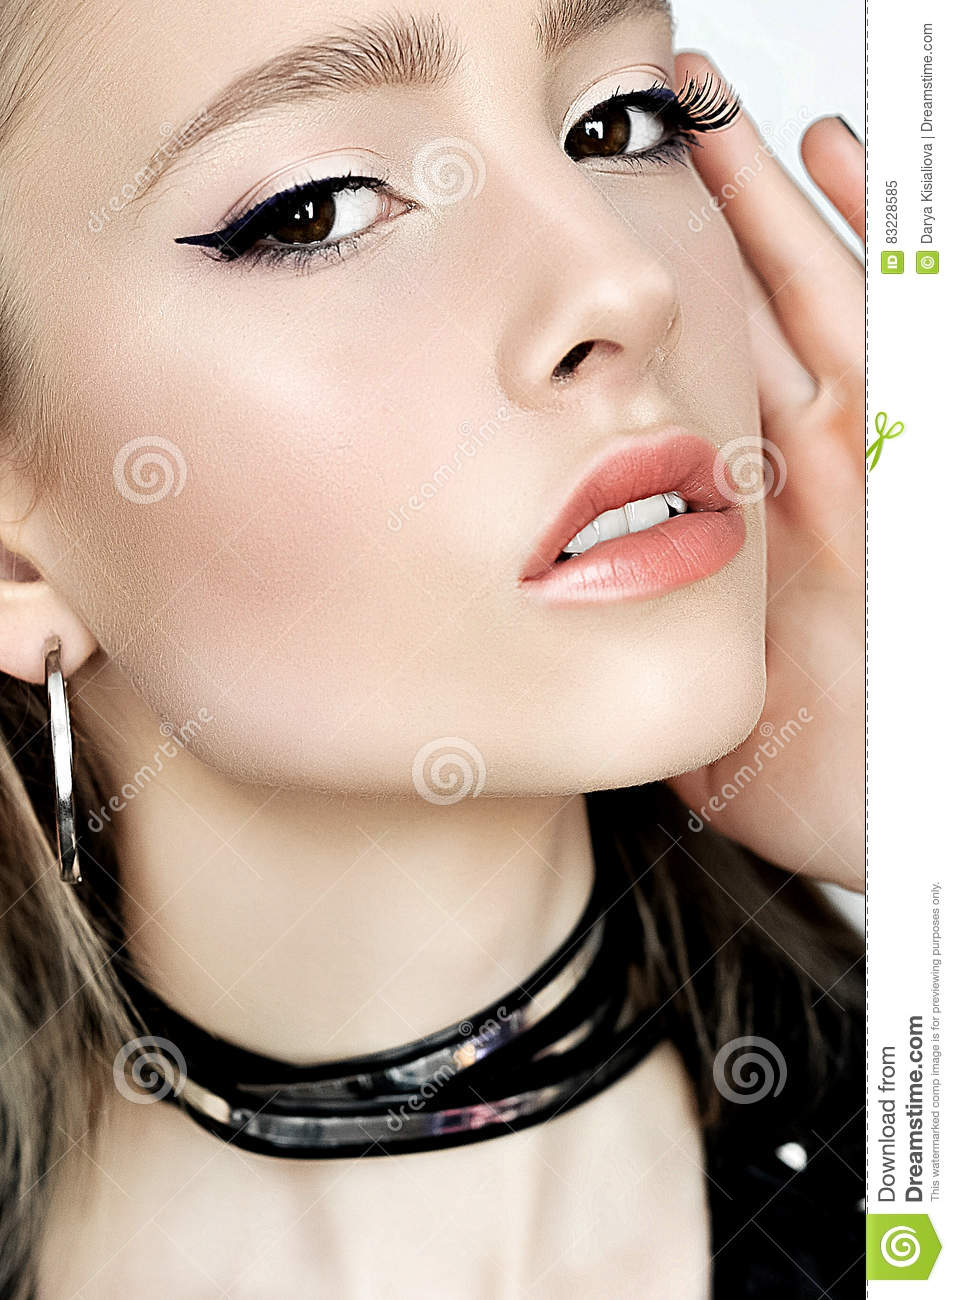 Makeup Punk Hairstyle Close Up Portrait Of Rock Girl